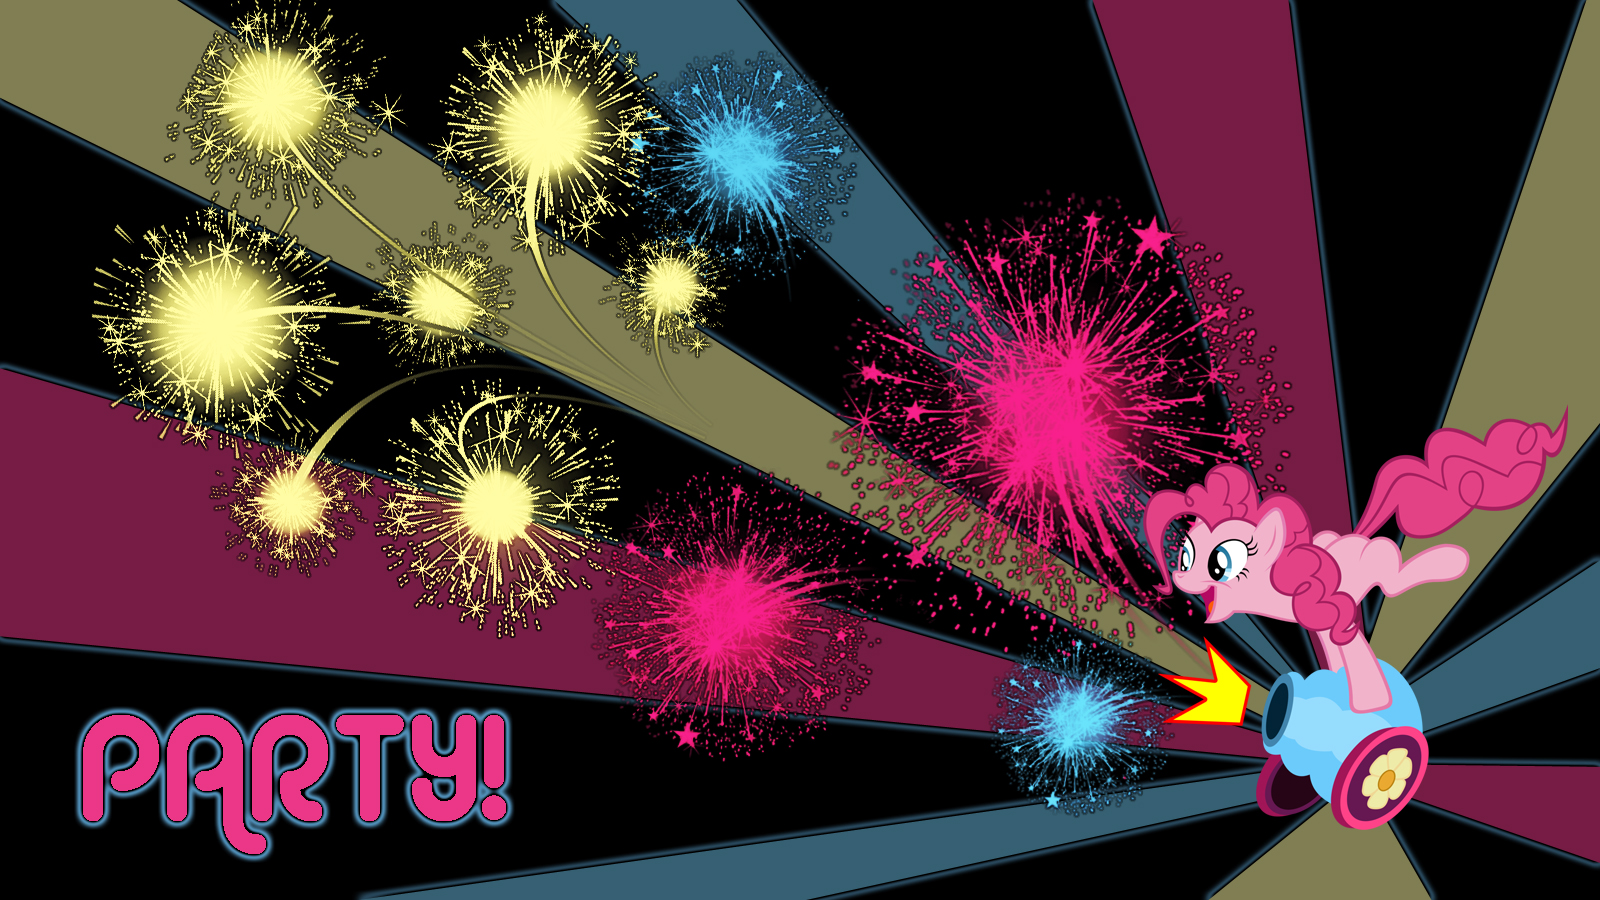 [Image: pinkie_pie_party_wallpaper_by_aloopyduck-d4rv0gf.jpg]